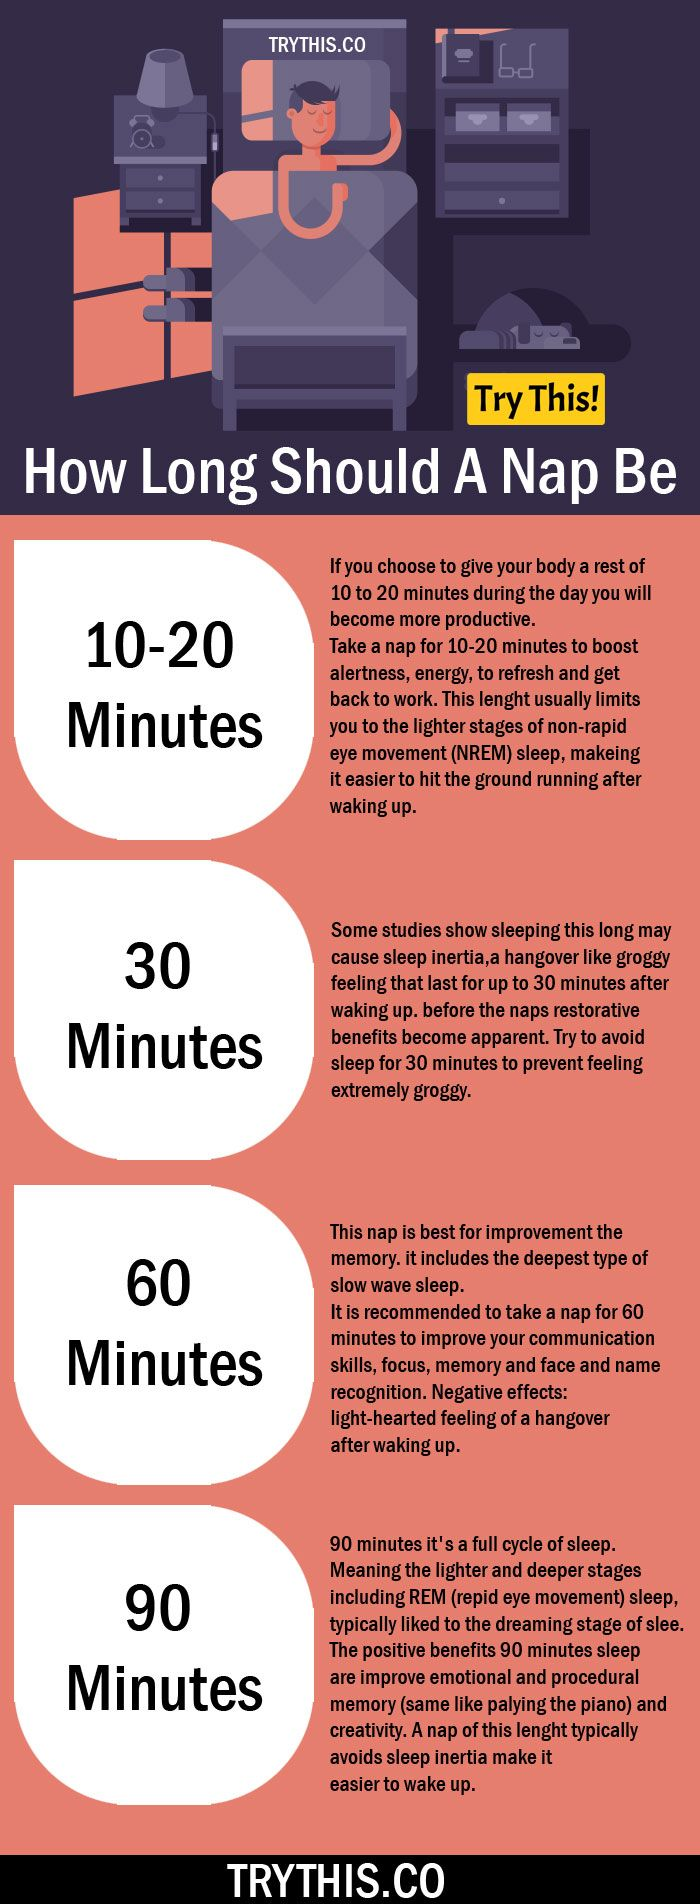 Naps. What's a good length to feel refreshed? A helpful Infographic.